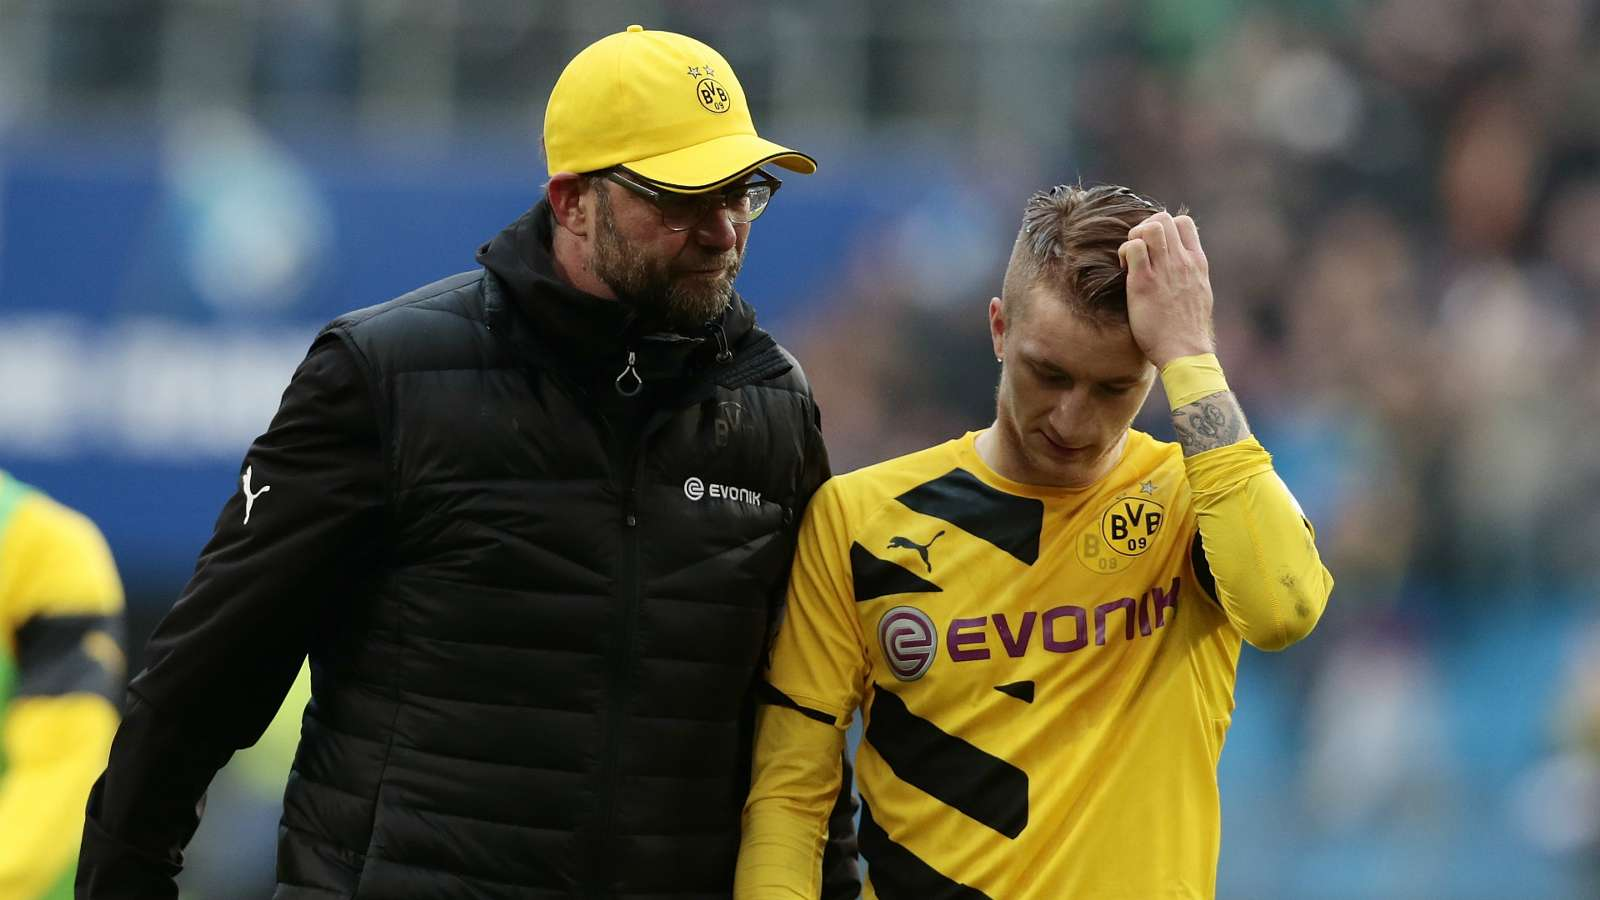 'Jurgen is an animal!' - Reus opens up on 'special' Klopp - Bóng Đá